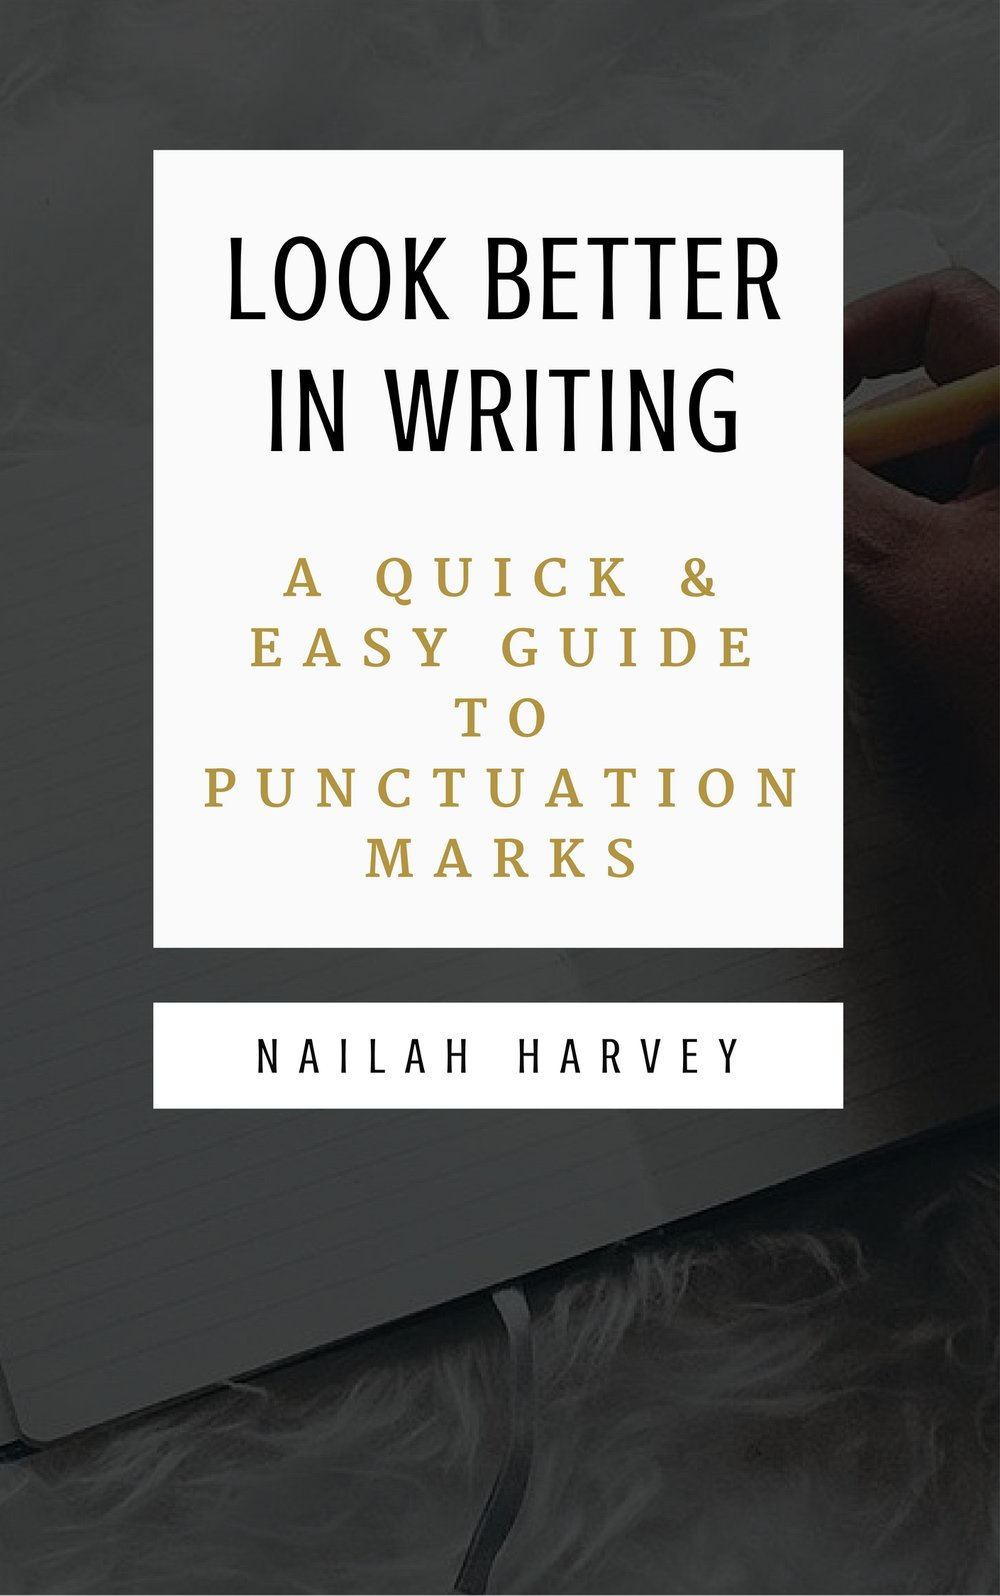 Look Better in Writing Book by Nailah Harvey